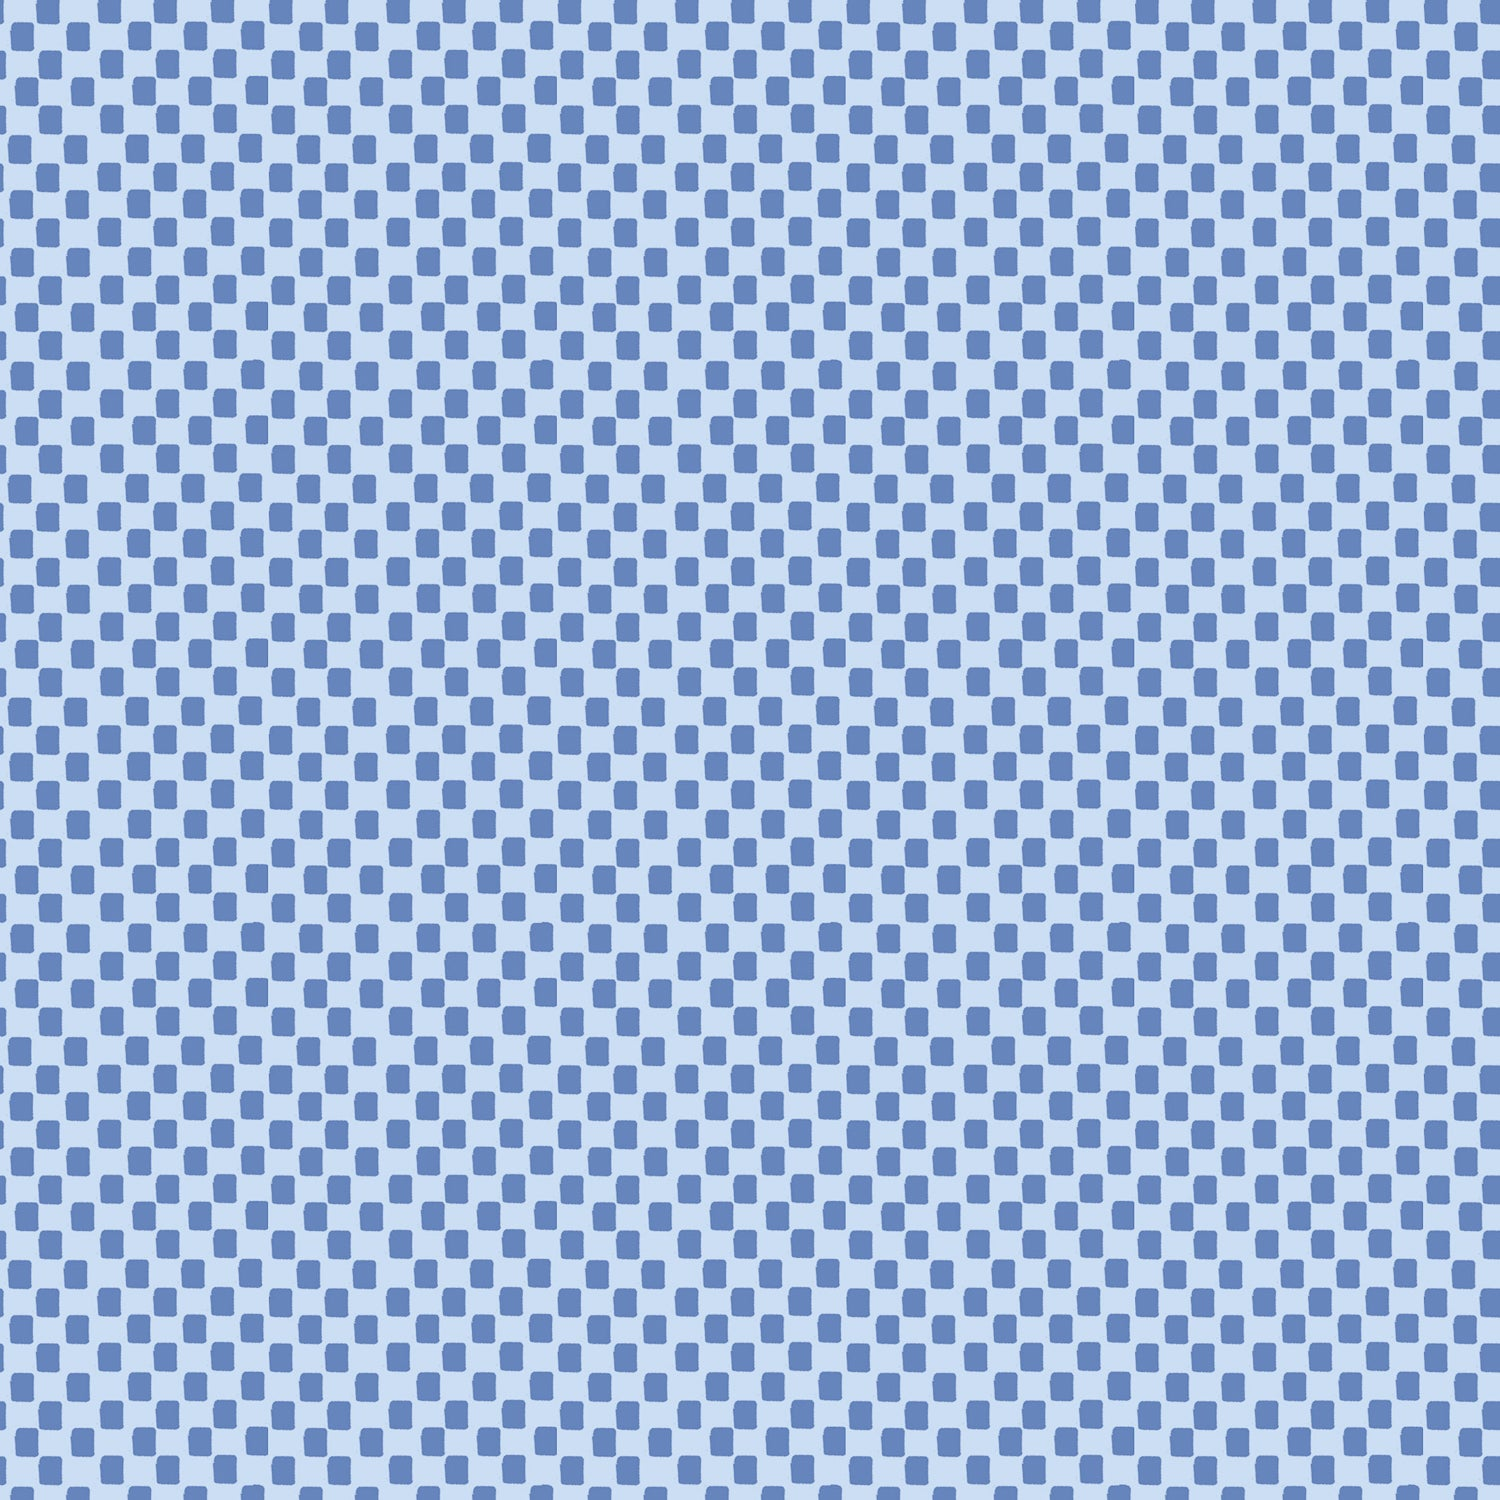 Wildwood - Checkers Blue